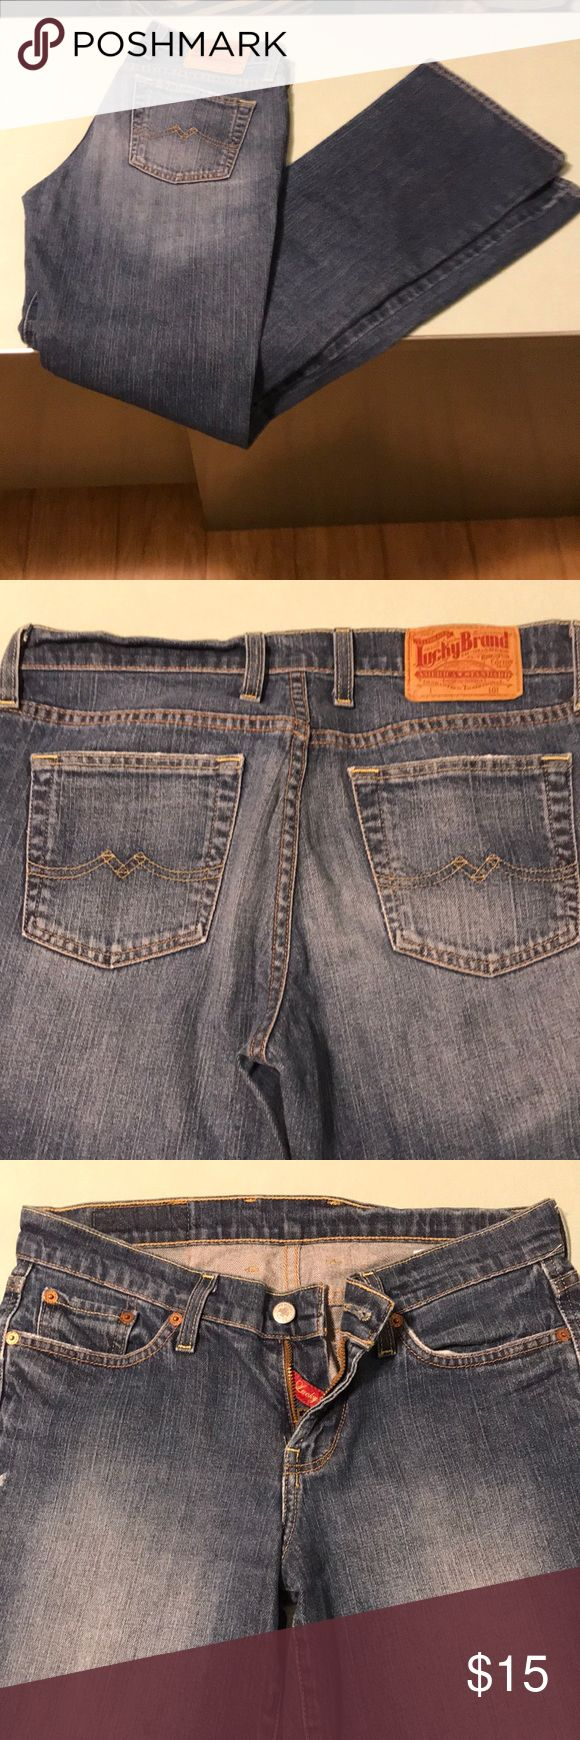 Lucky Brand dungarees jeans sweet and low Great pair of Lucky Brand dungarees in outstanding condition. They are size 28 Long and sweet n low long length. Let me know if you have questions. Lucky Brand Jeans Straight Leg